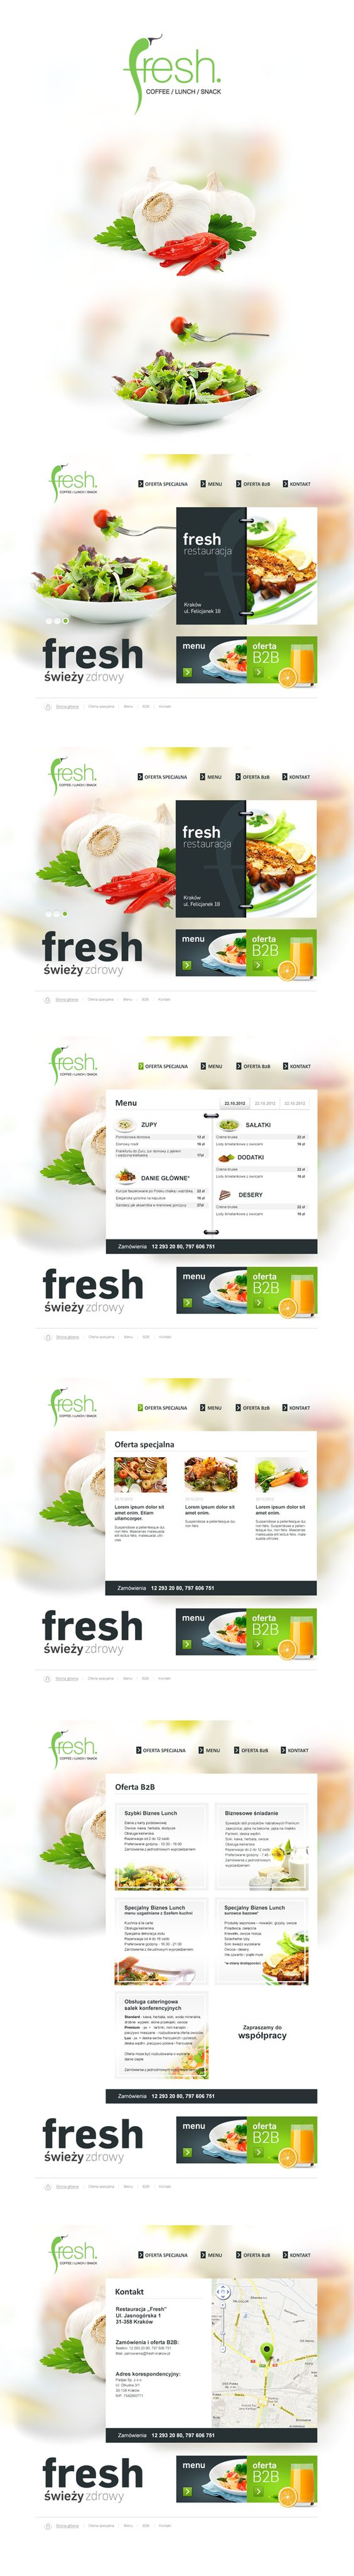 fresh by bart omiej g boli via behance nice design of a menu off fresh by bart322omiej g281boli347 via behance nice design of a menu off a website